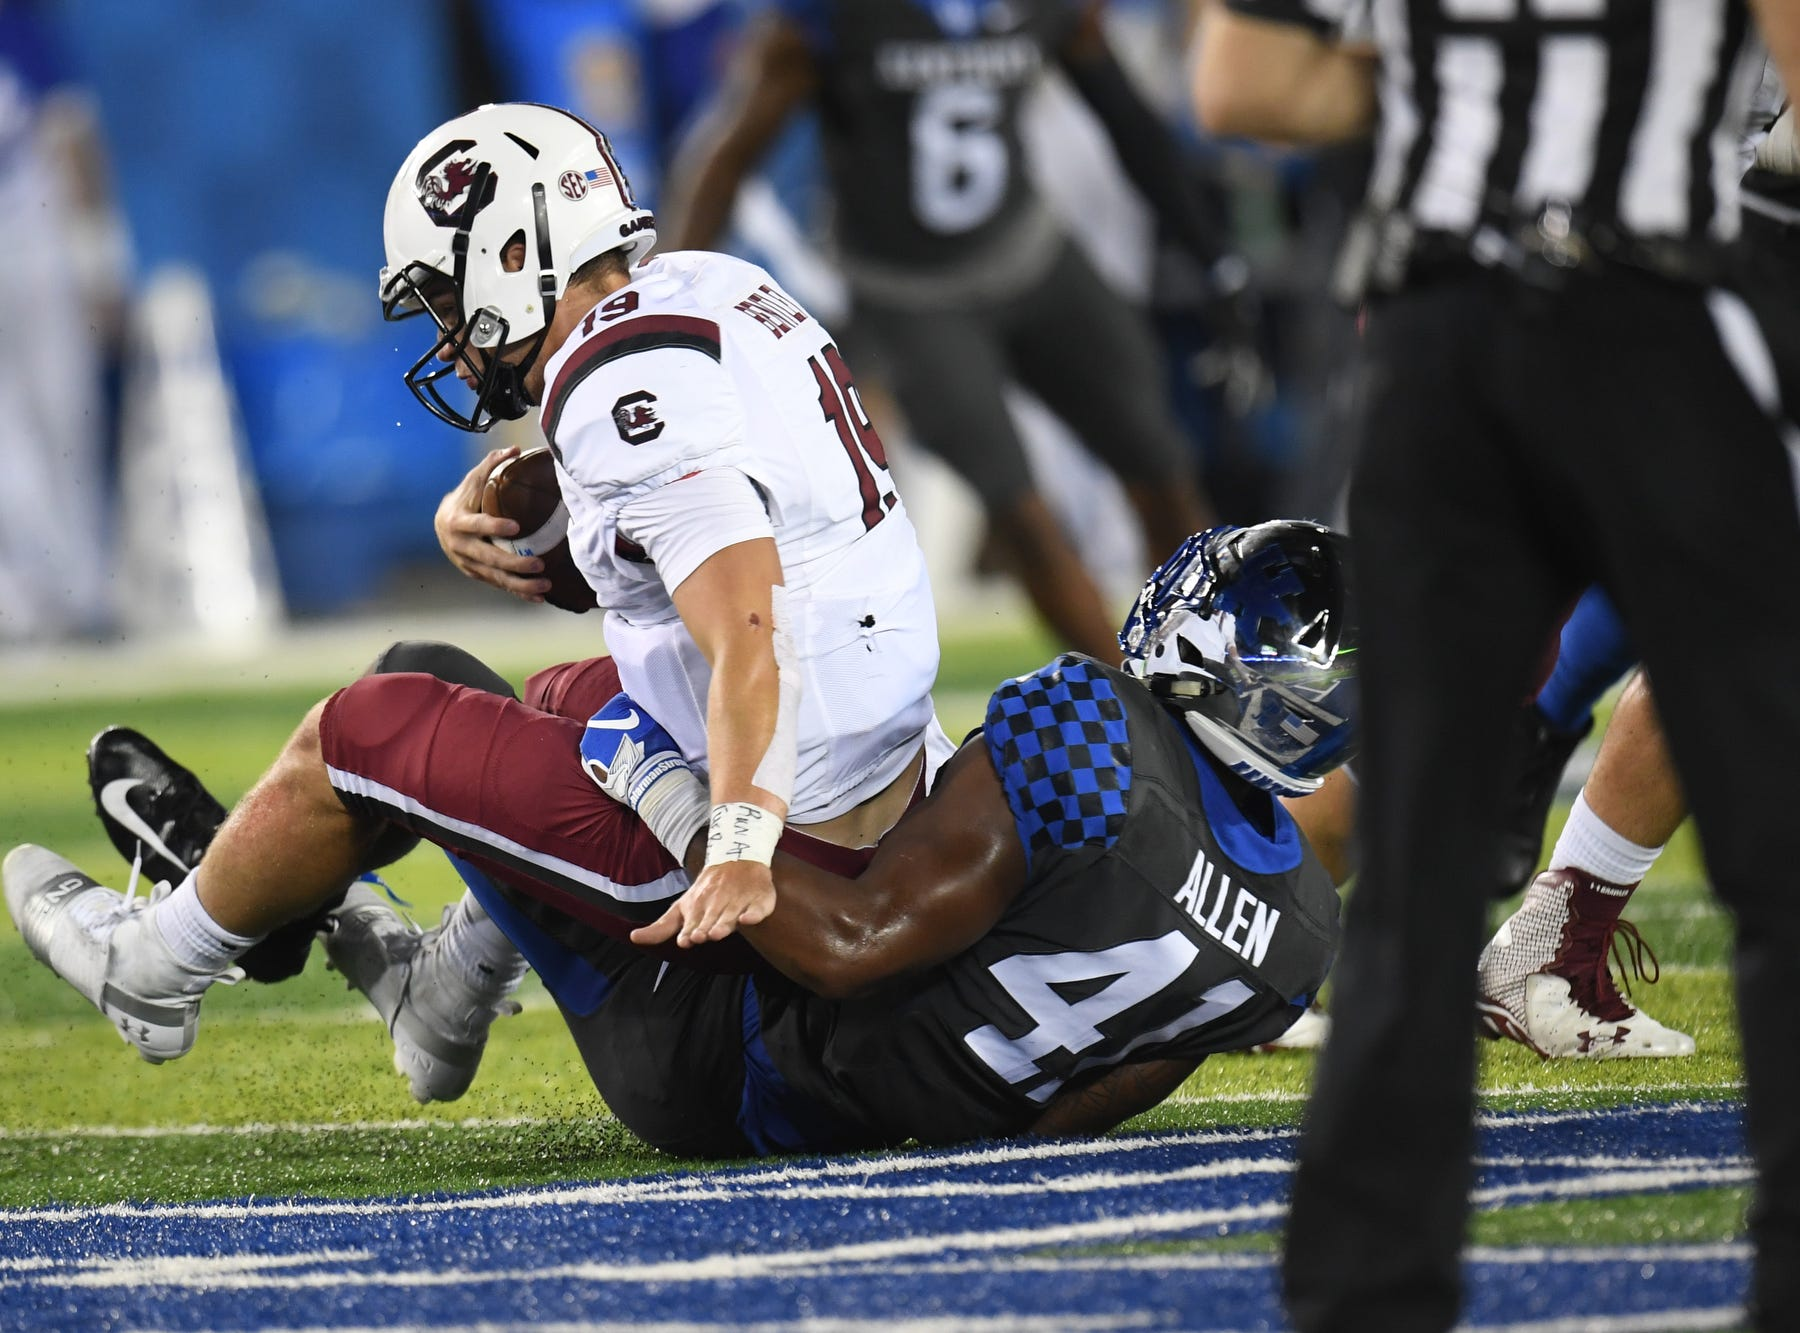 UK DE Josh Allen sacks USC QB Jake Bentley during the University of Kentucky football game against South Carolina at Kroger Field in Lexington, Kentucky on Saturday, September 29, 2018.